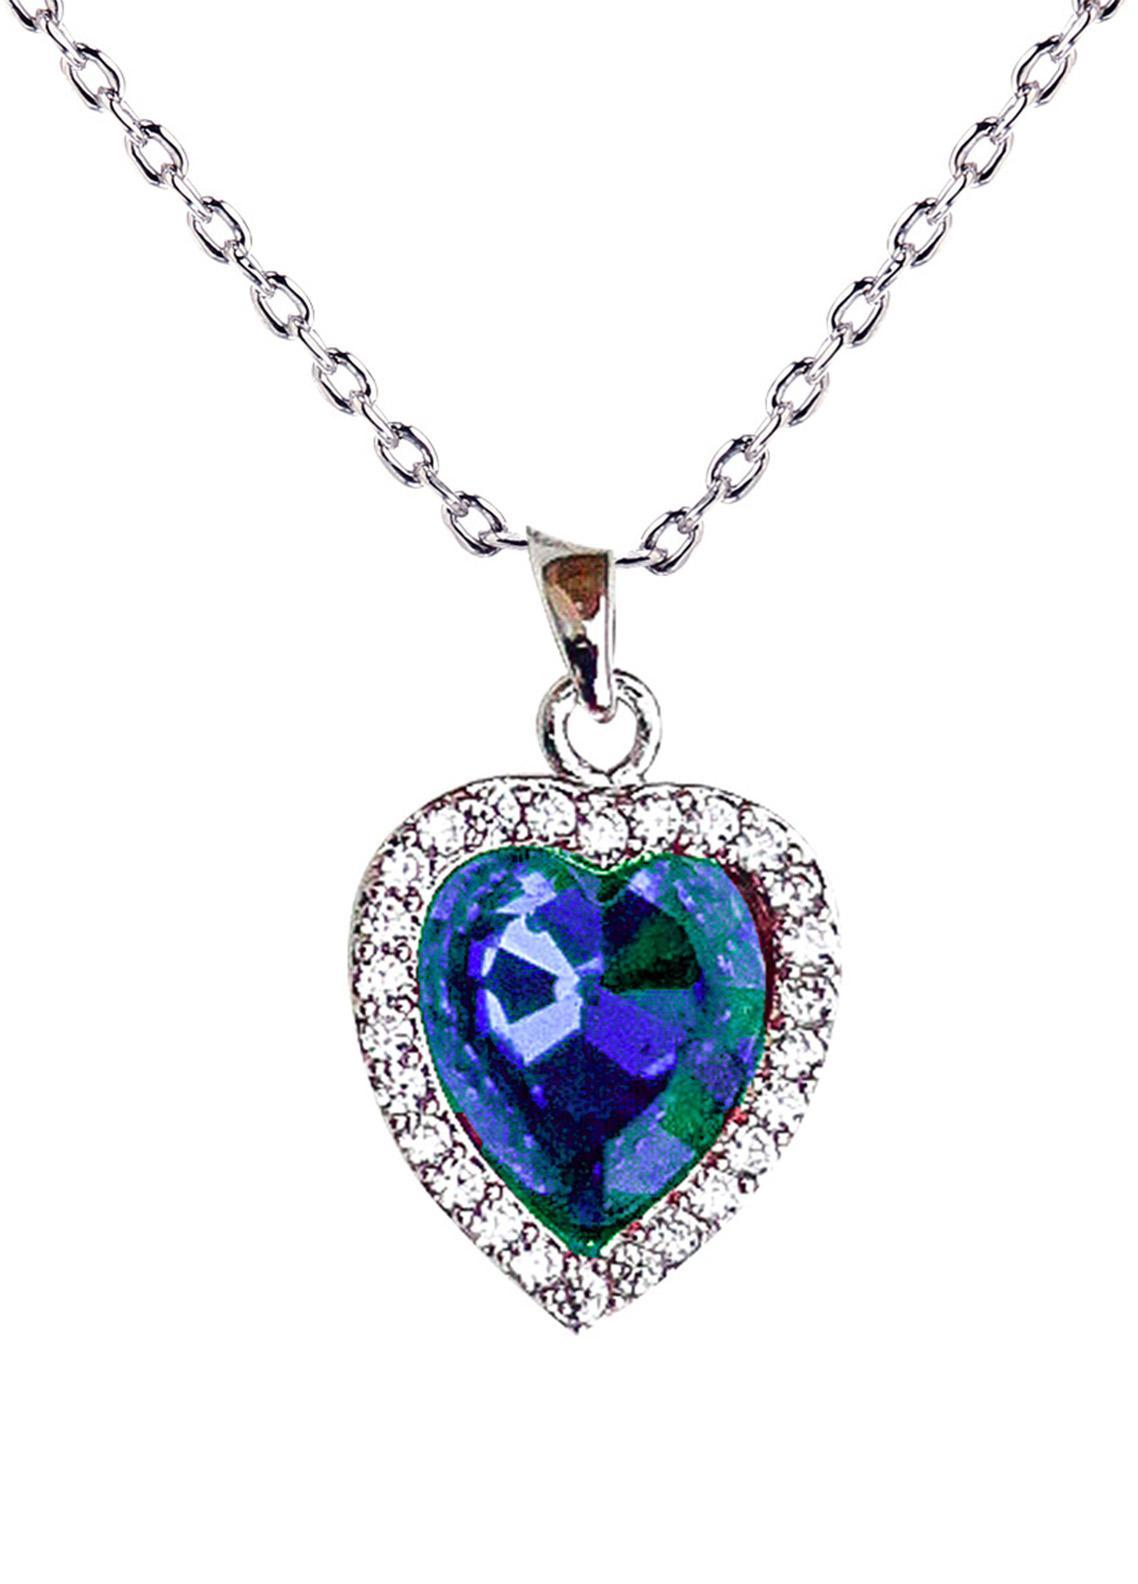 Anna Grace London by Silk Avenue Navy/Emerald Crystal Heart Necklace AGN0037 - Ladies Jewellery